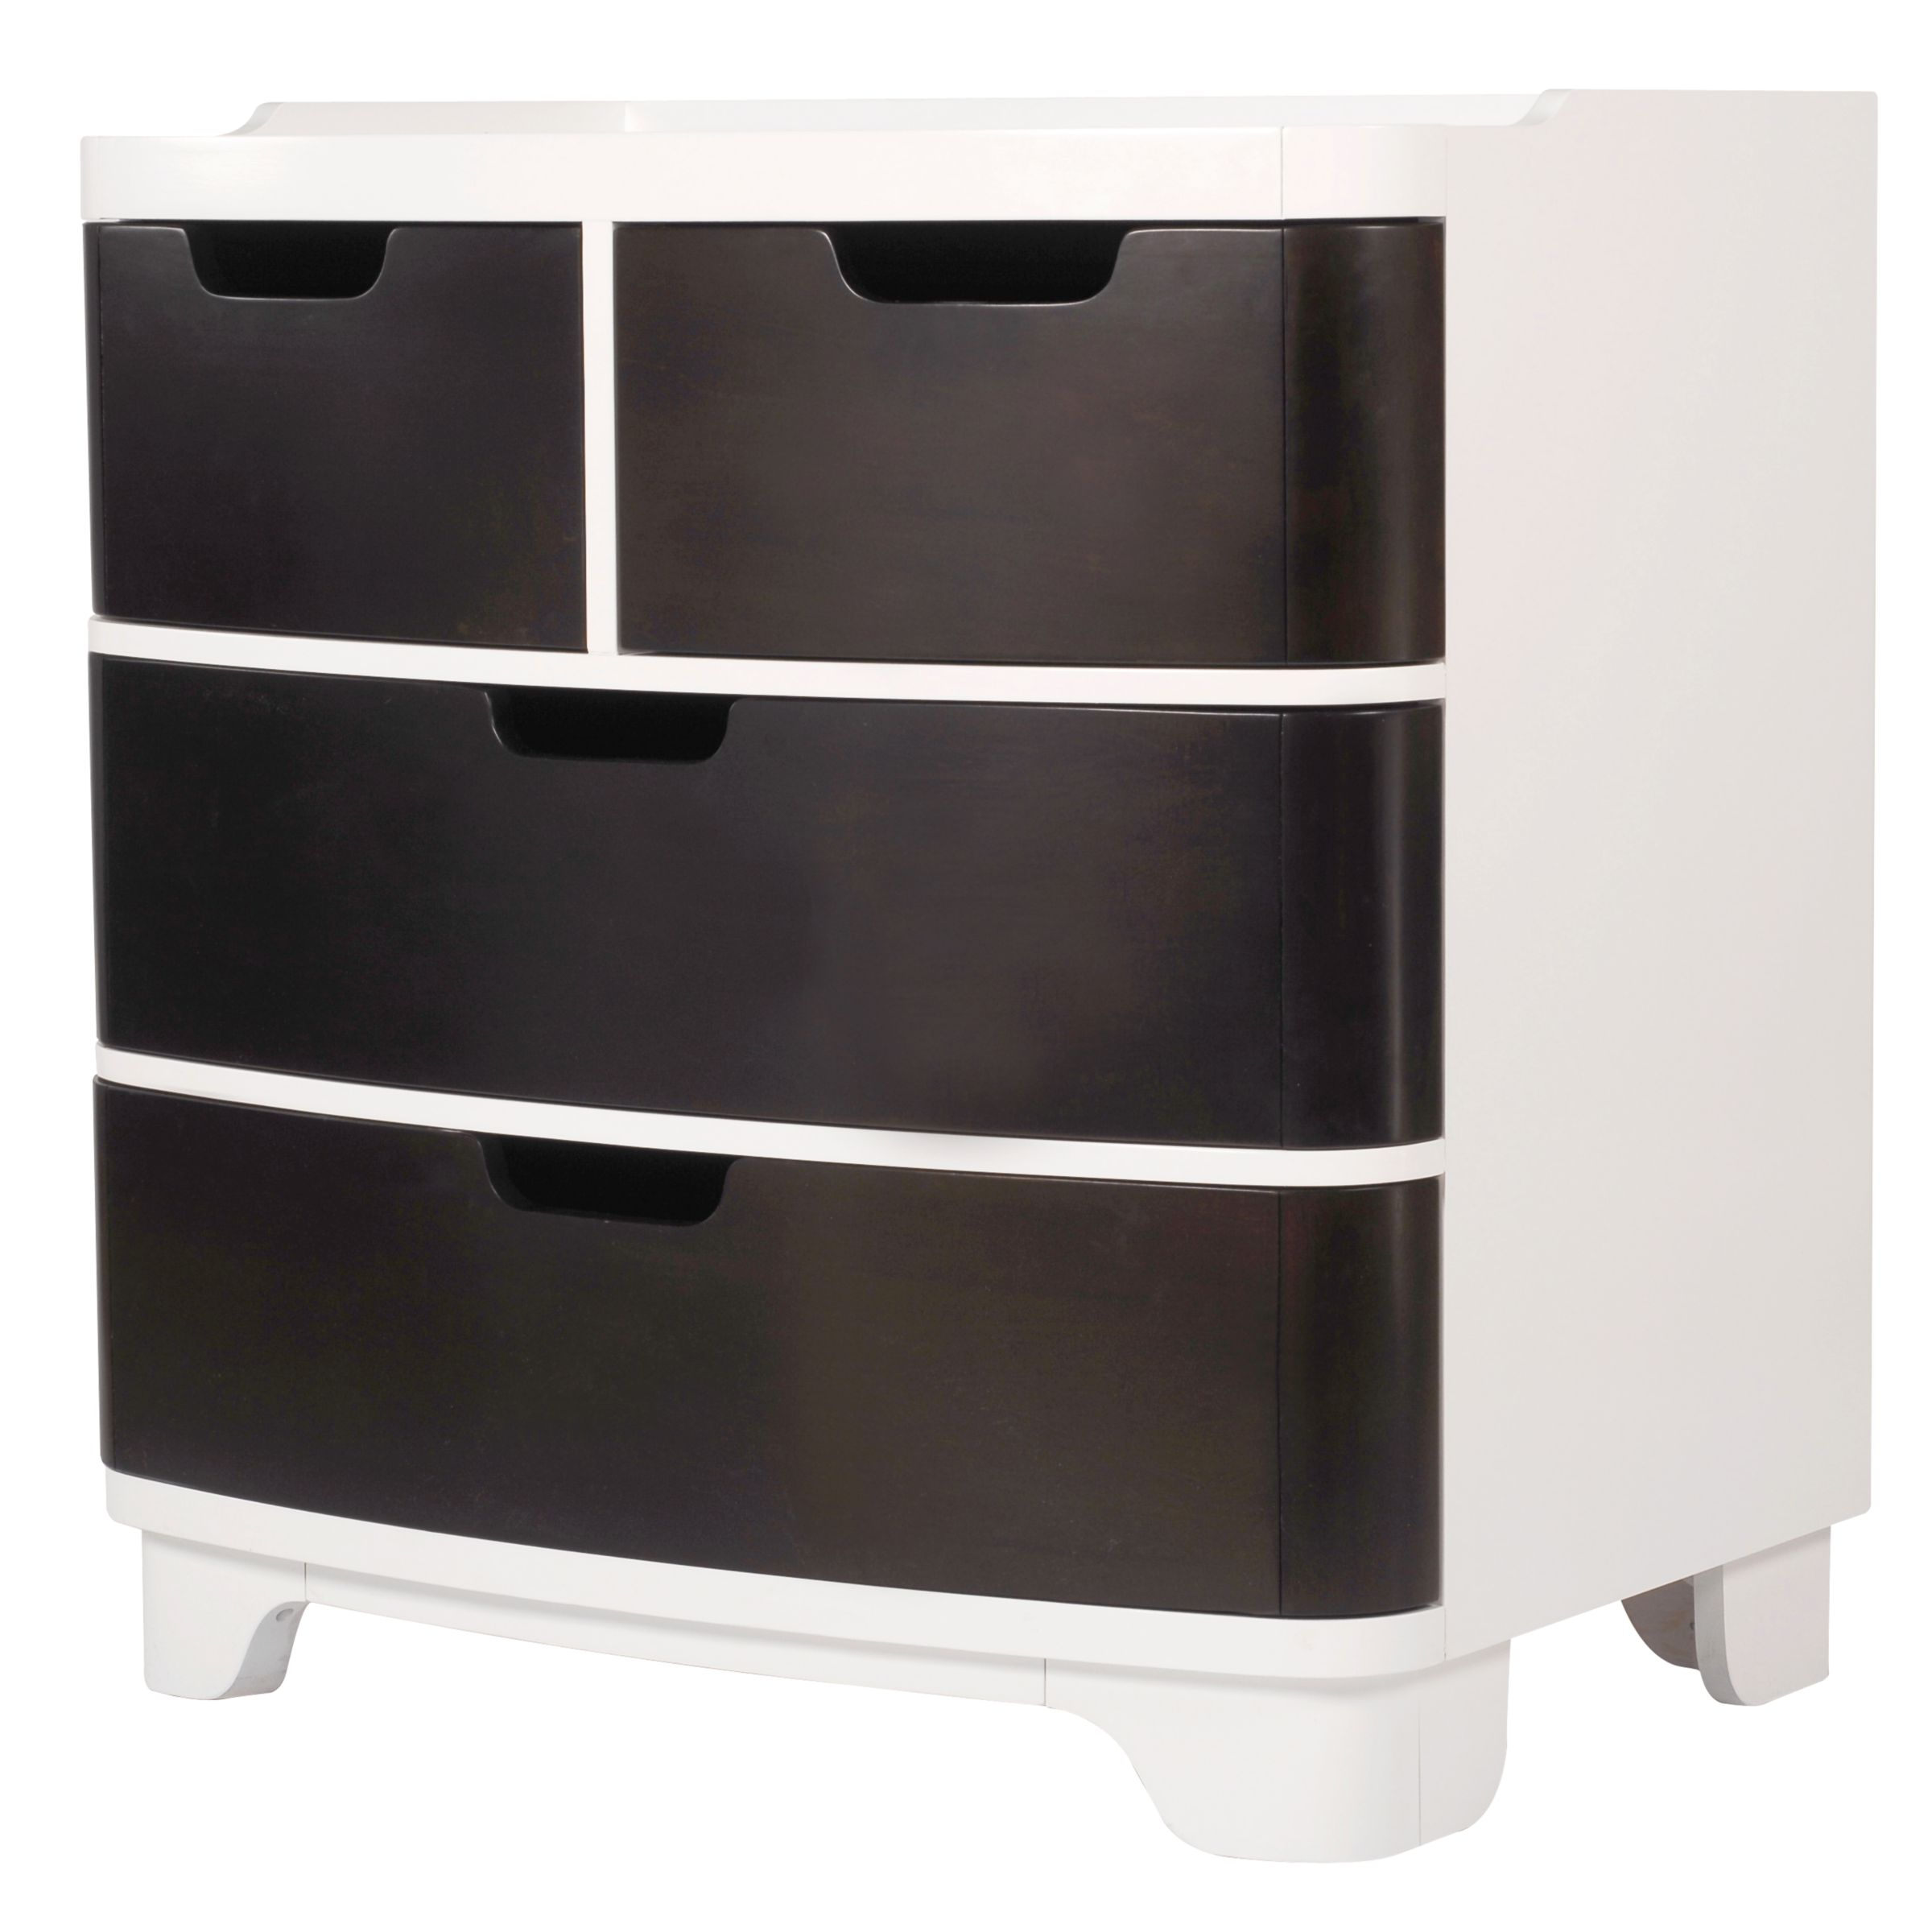 bloom Luxo Dresser and Changer, Cappucino at John Lewis